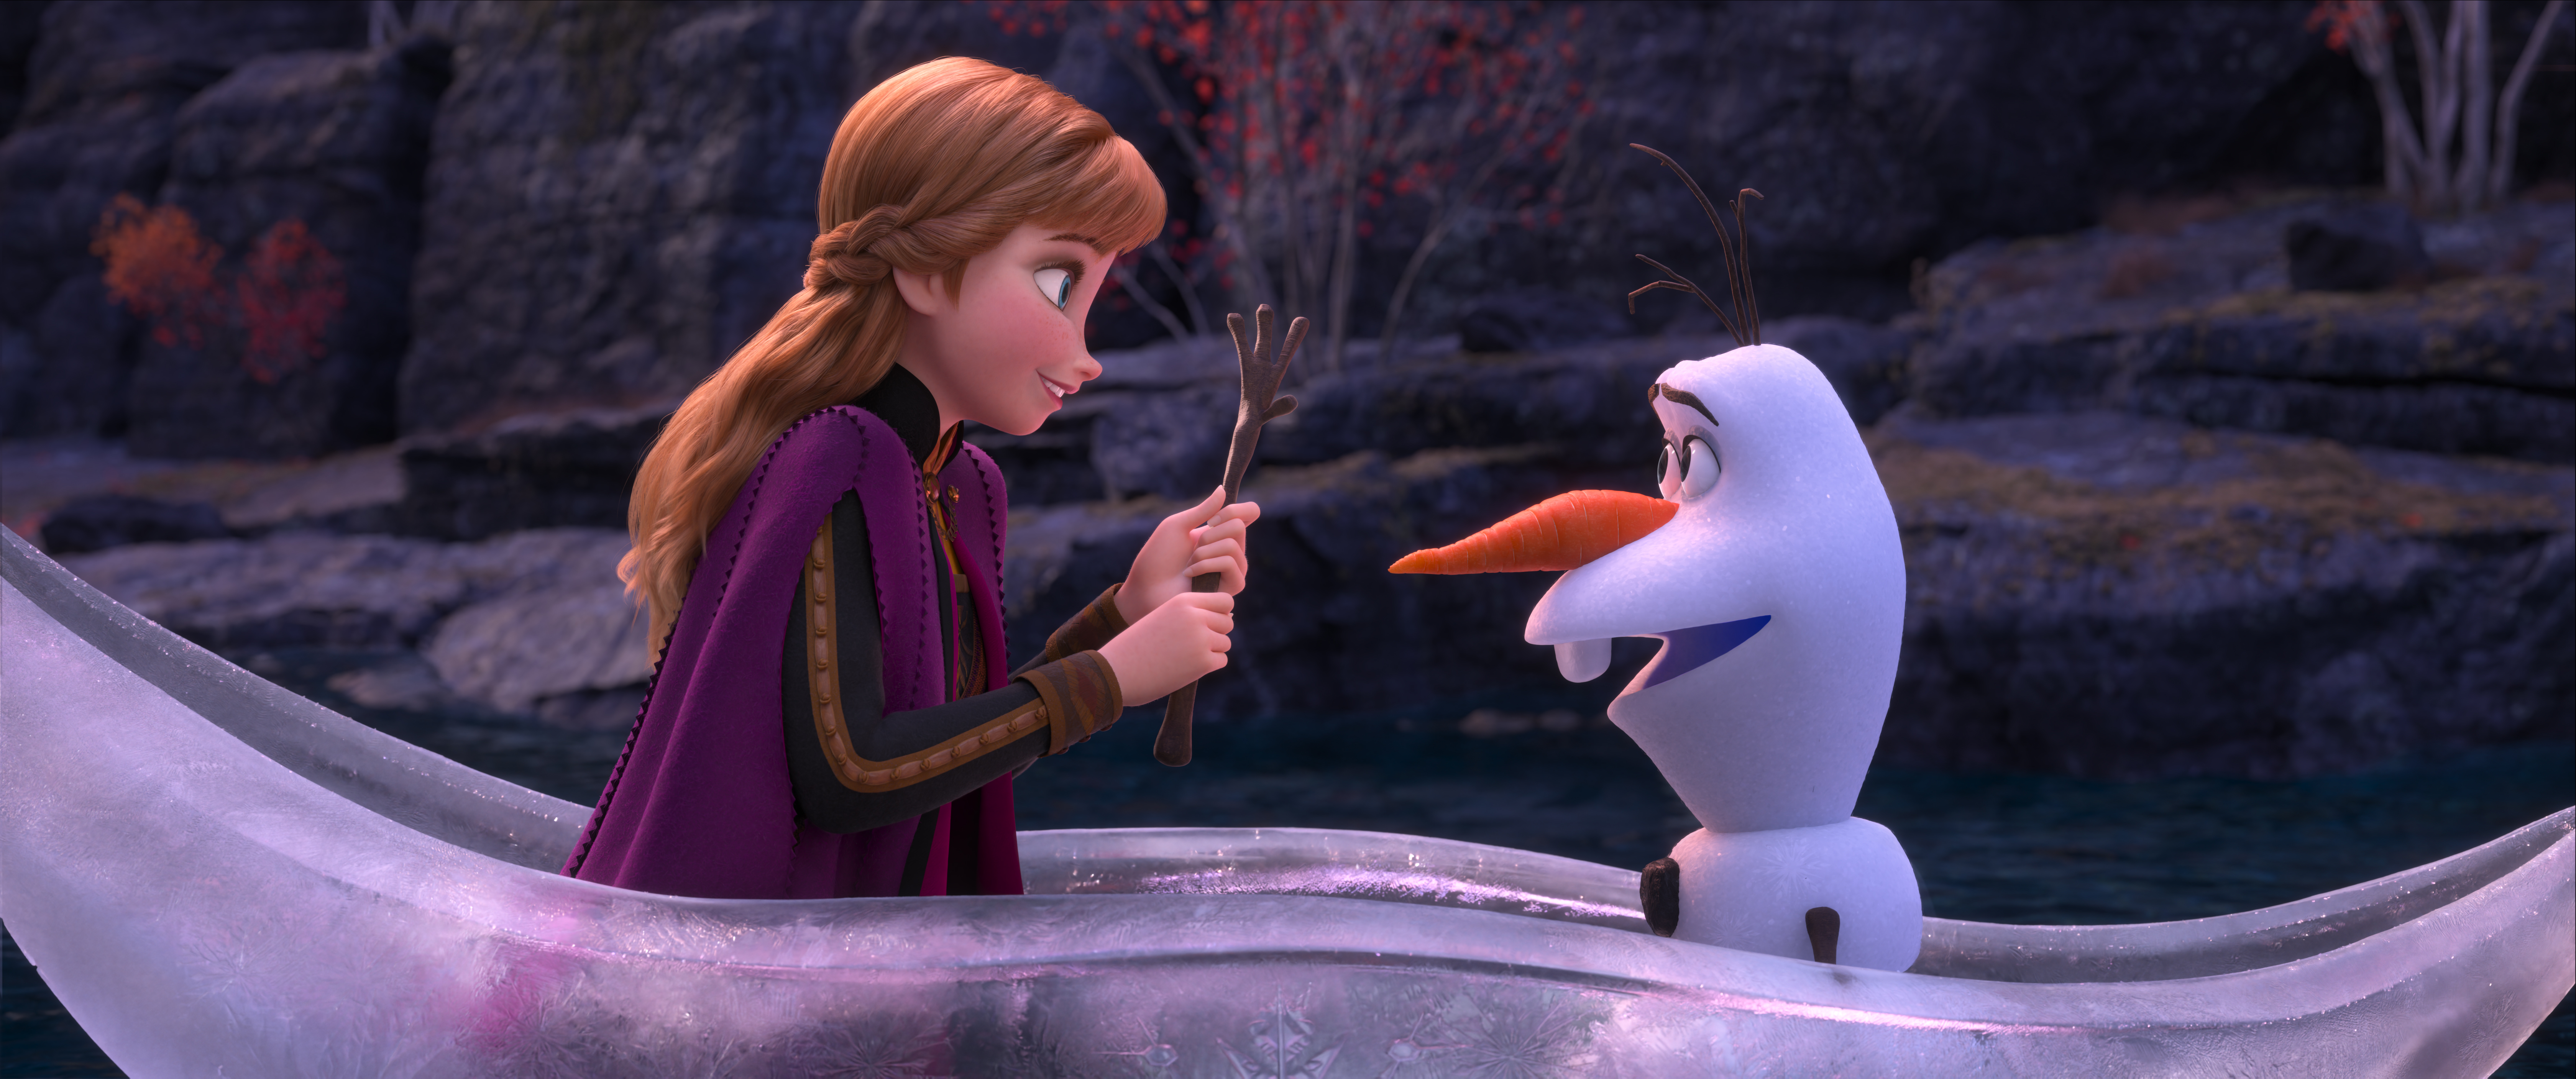 Anna and Olaf Frozen 2